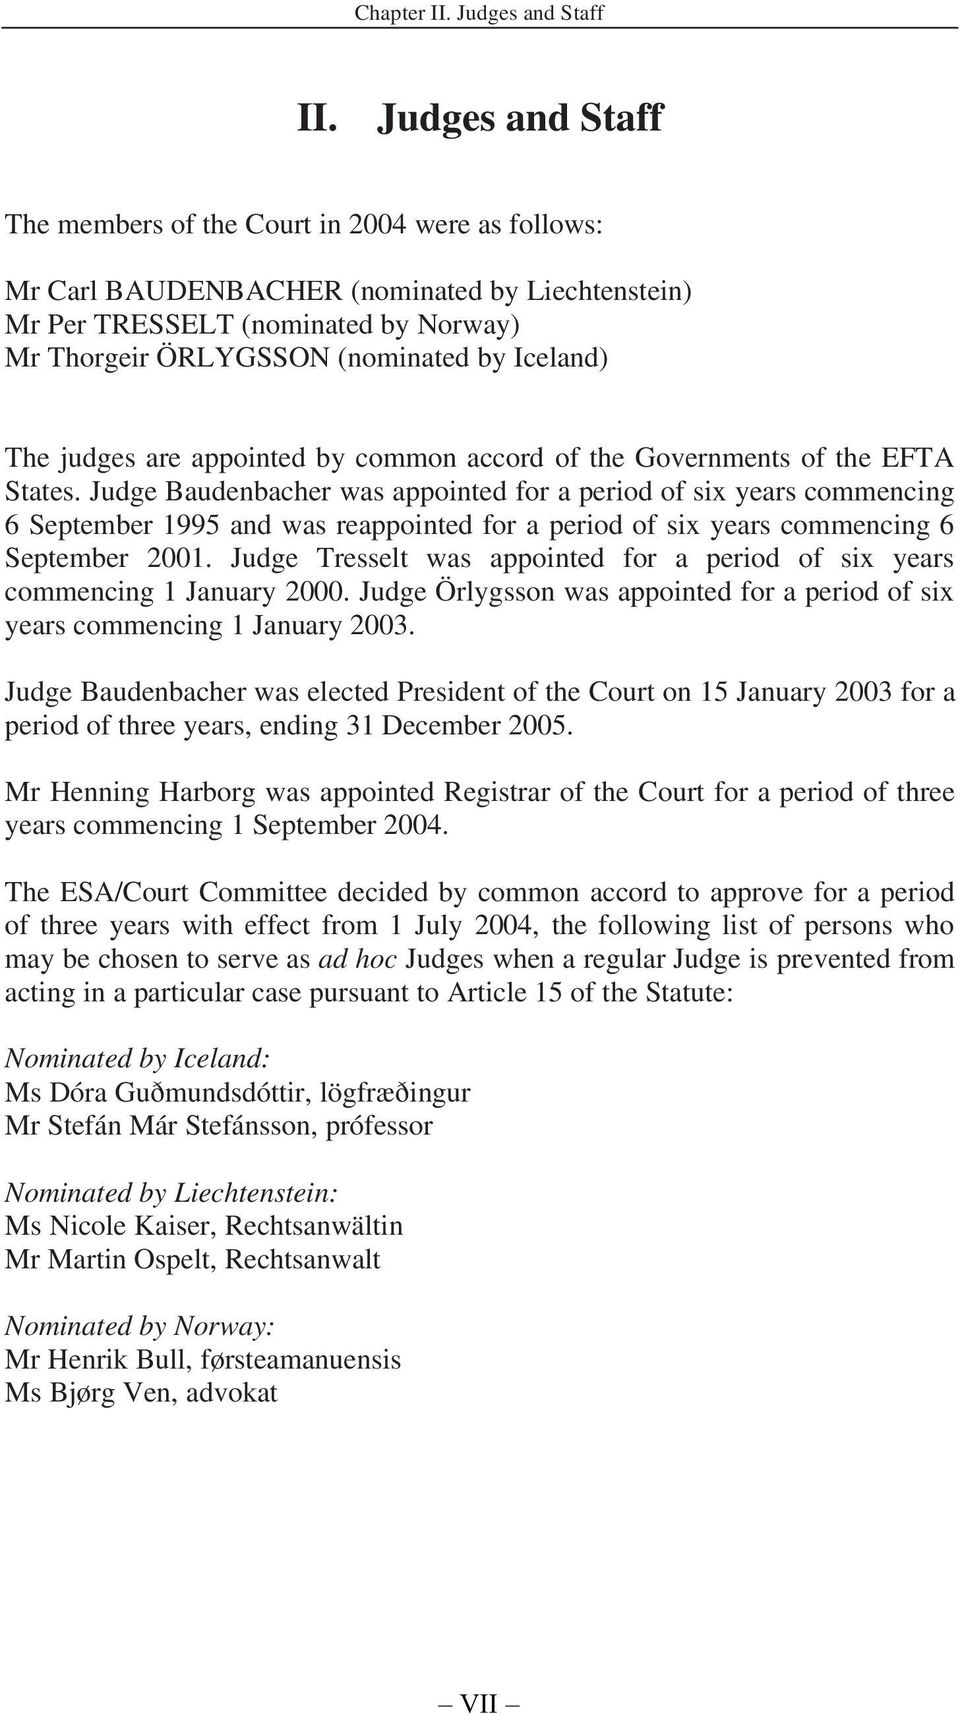 The judges are appointed by common accord of the Governments of the EFTA States.